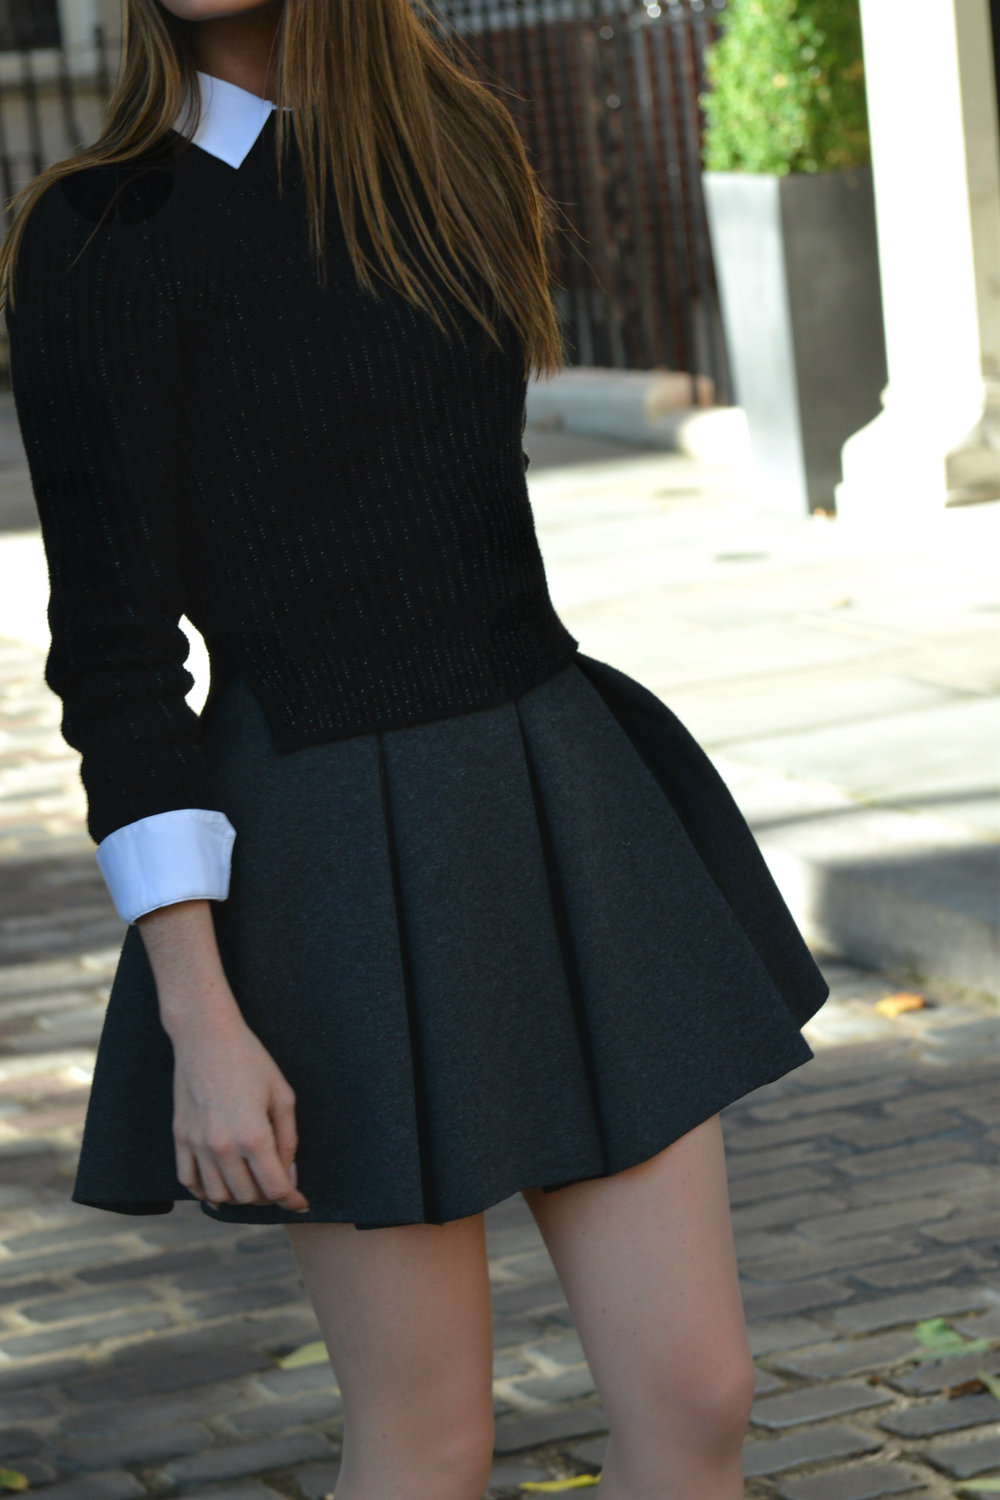 BACK TO SCHOOL: BLAIR WALDORF STYLE,UNIFORMS TRENDS BY MAUREEN SOPHIE KRAGT BLOGGER FROM THEVANILLAWOODS. SKIRT &WHITE SHIRT BY ZARA, SNEAKERS BY JIMMY CHOO photo (9)